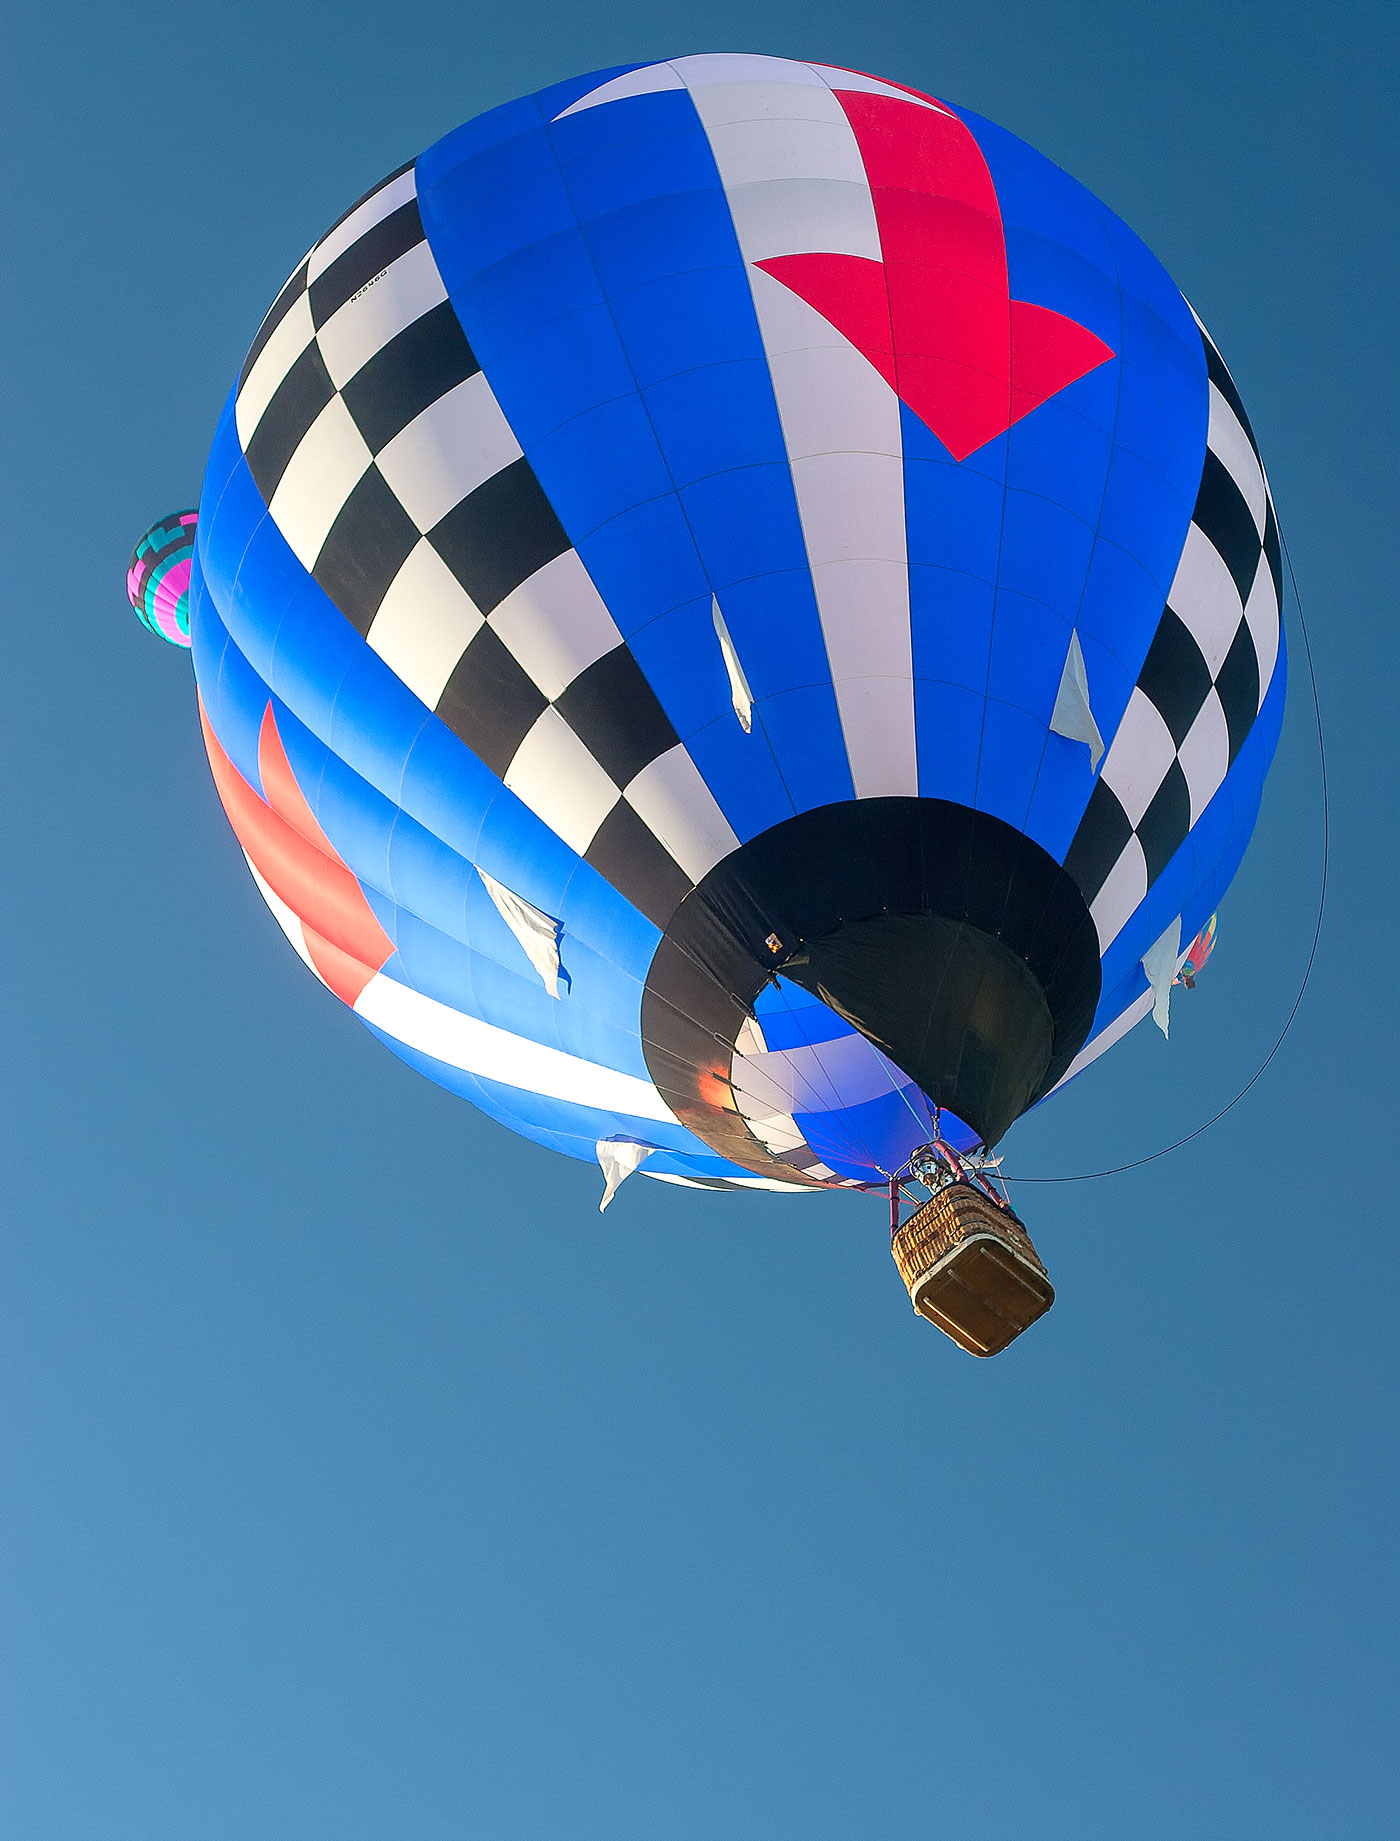 Balloon Fiesta Photography